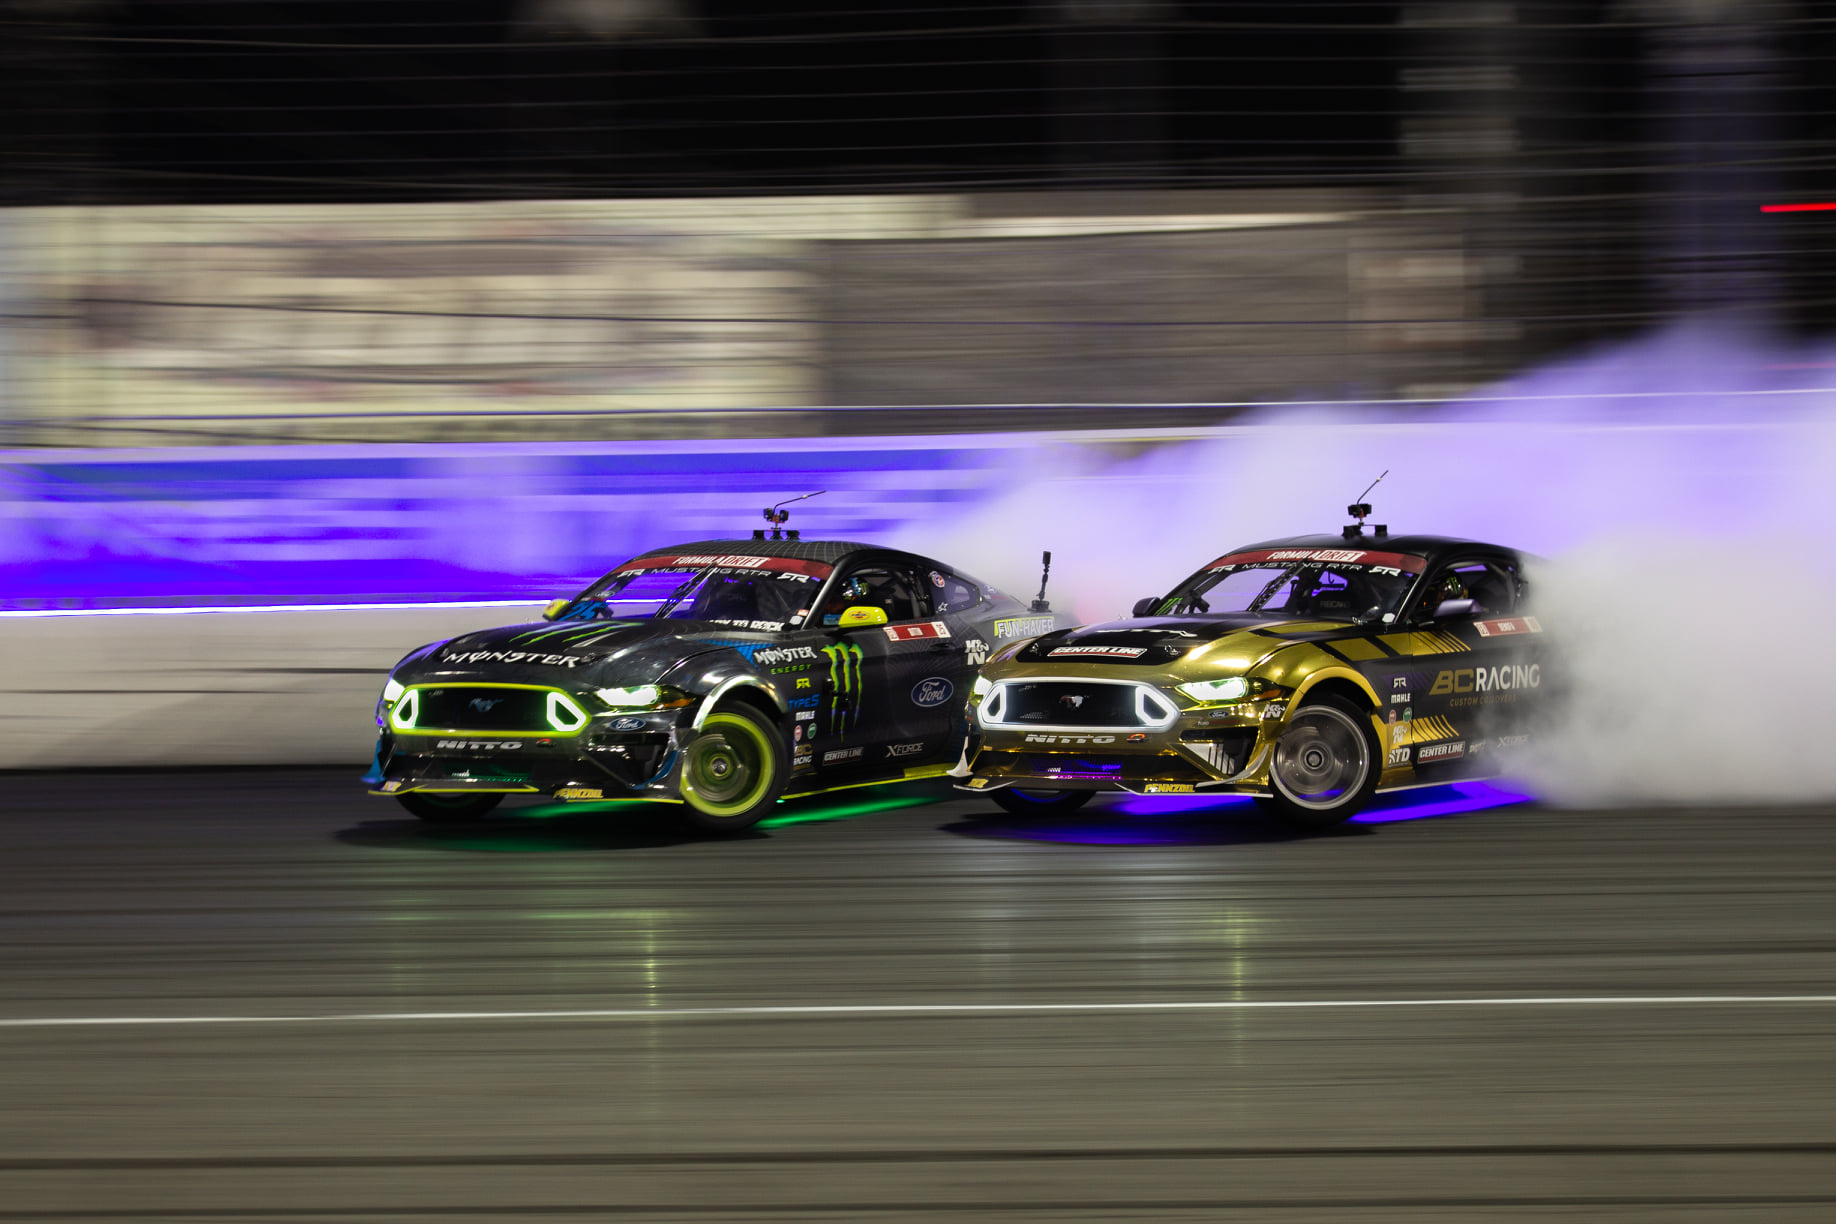 Vaughn Gittin Jr. leads Chelsea Denofa at Irwindale Speedway. Photo by Togue Culture.